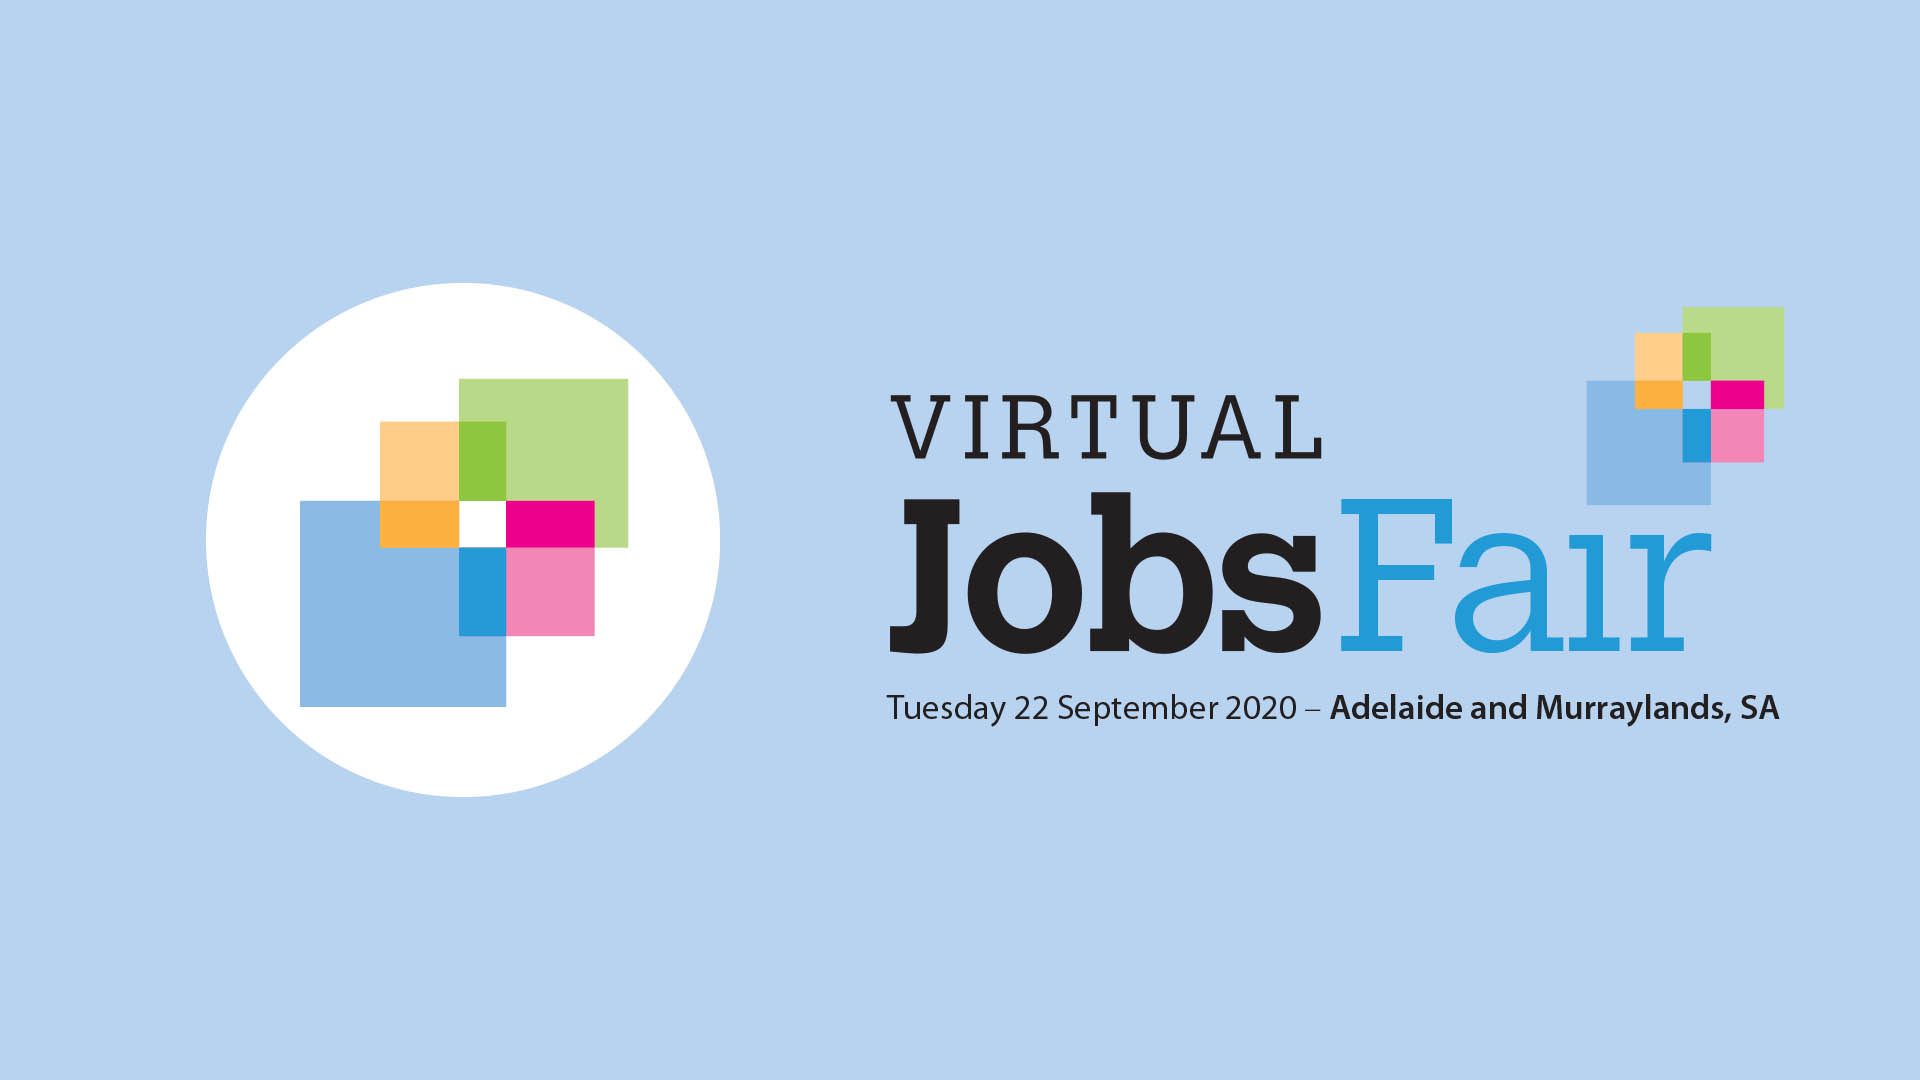 Adelaide and Murraylands Virtual Jobs Fair Connects Job Seekers With Employers